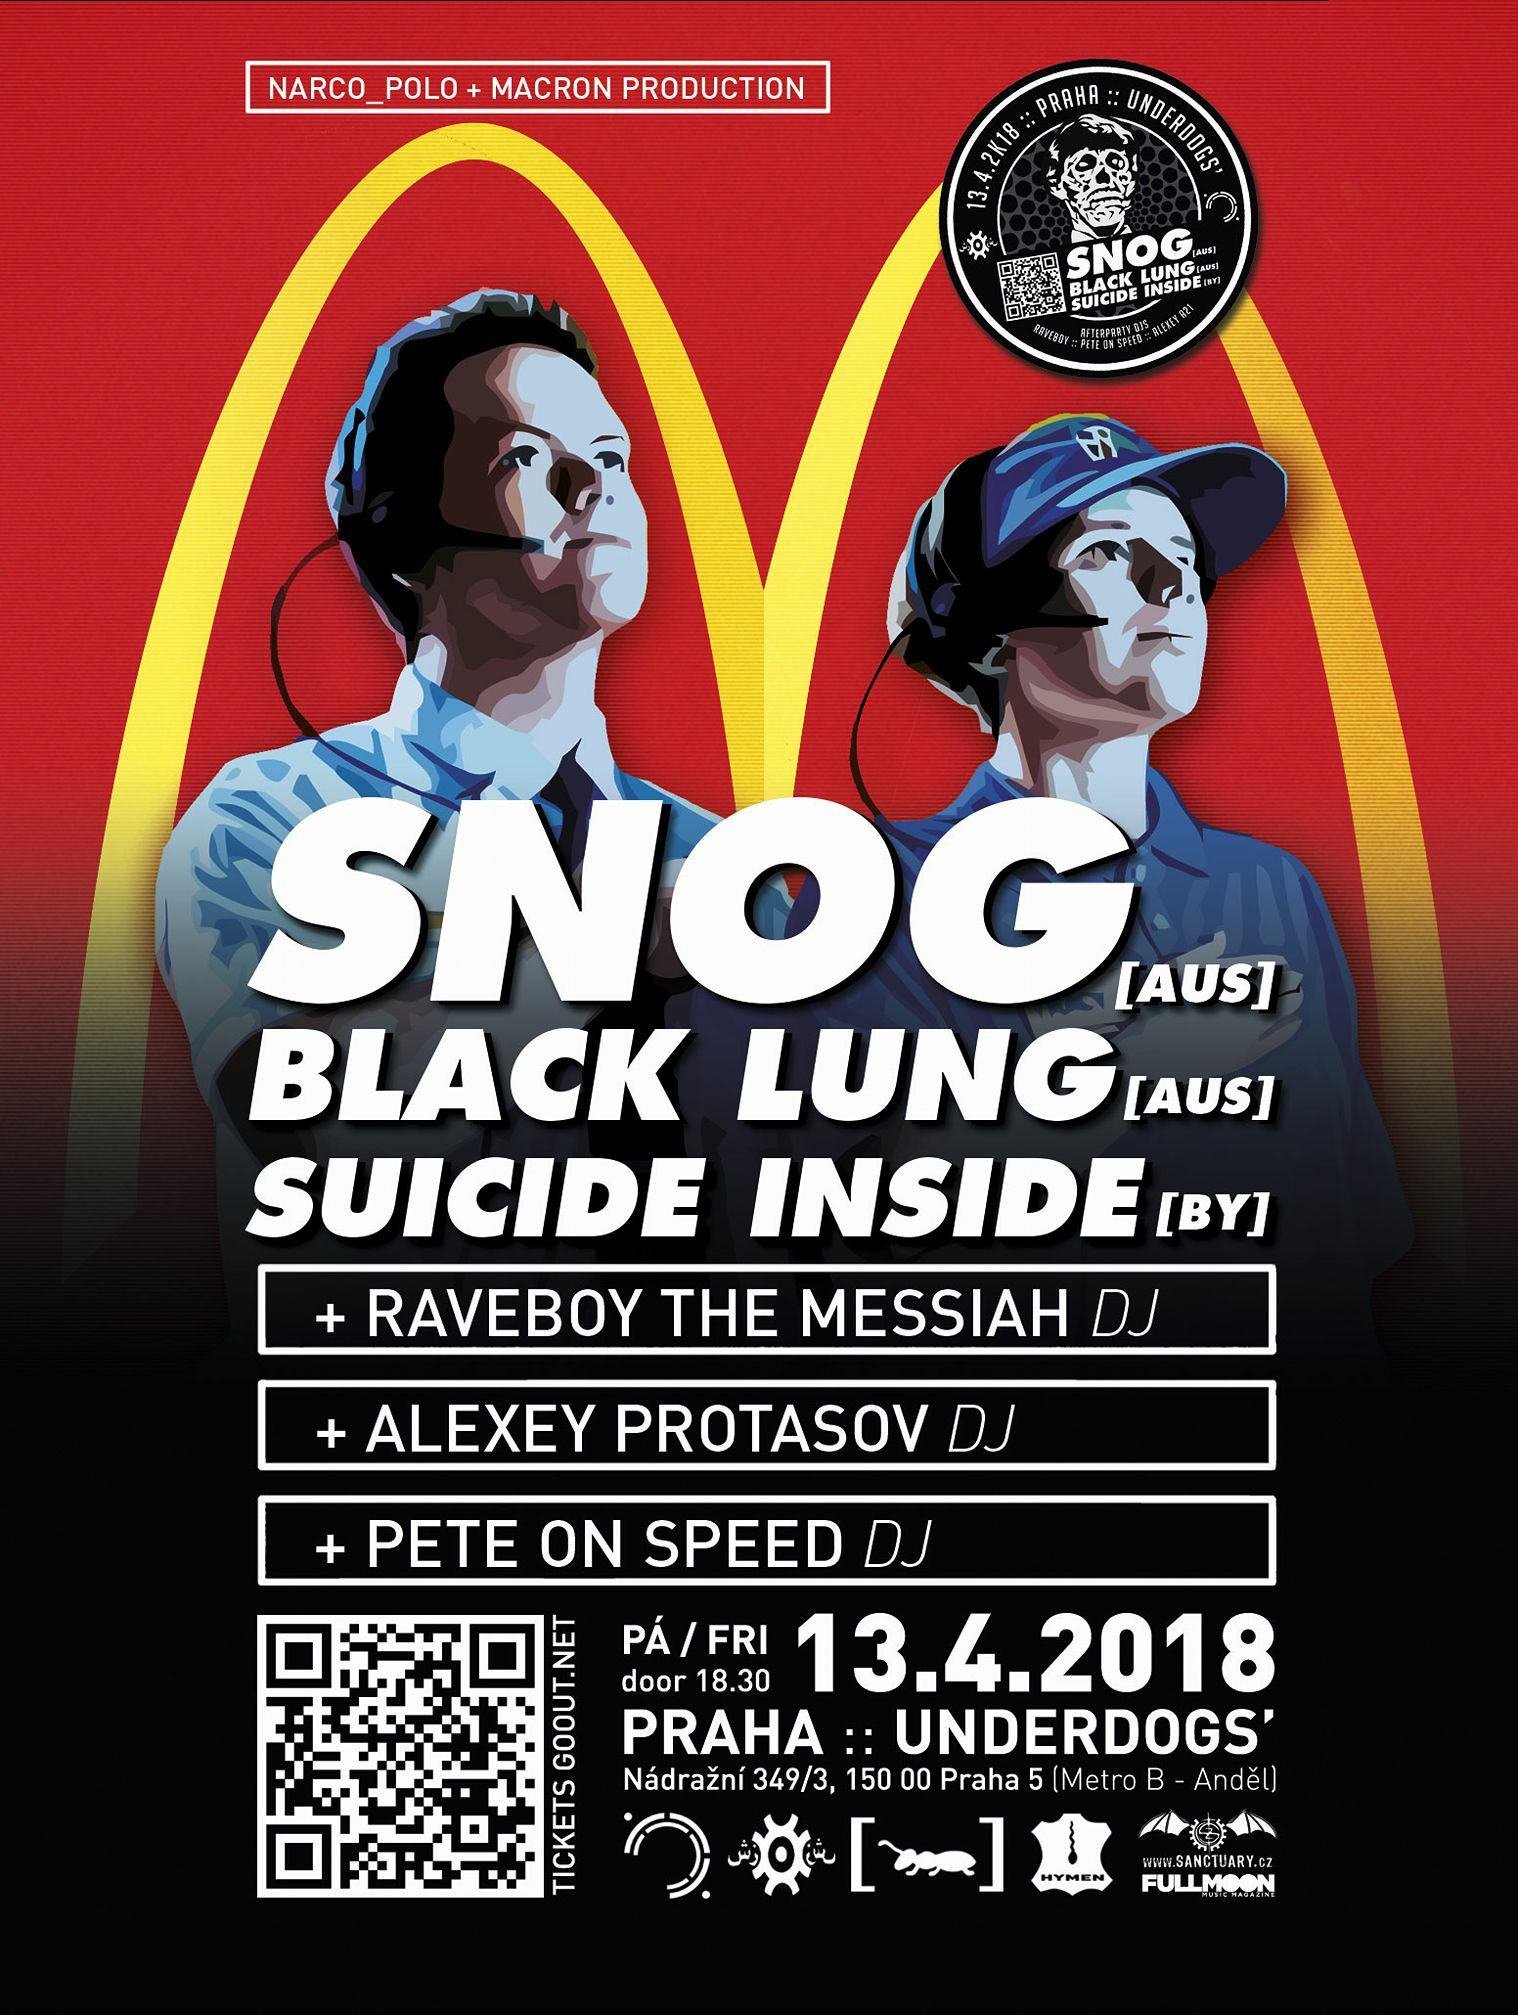 Snog, Black Lung, Suicide Inside